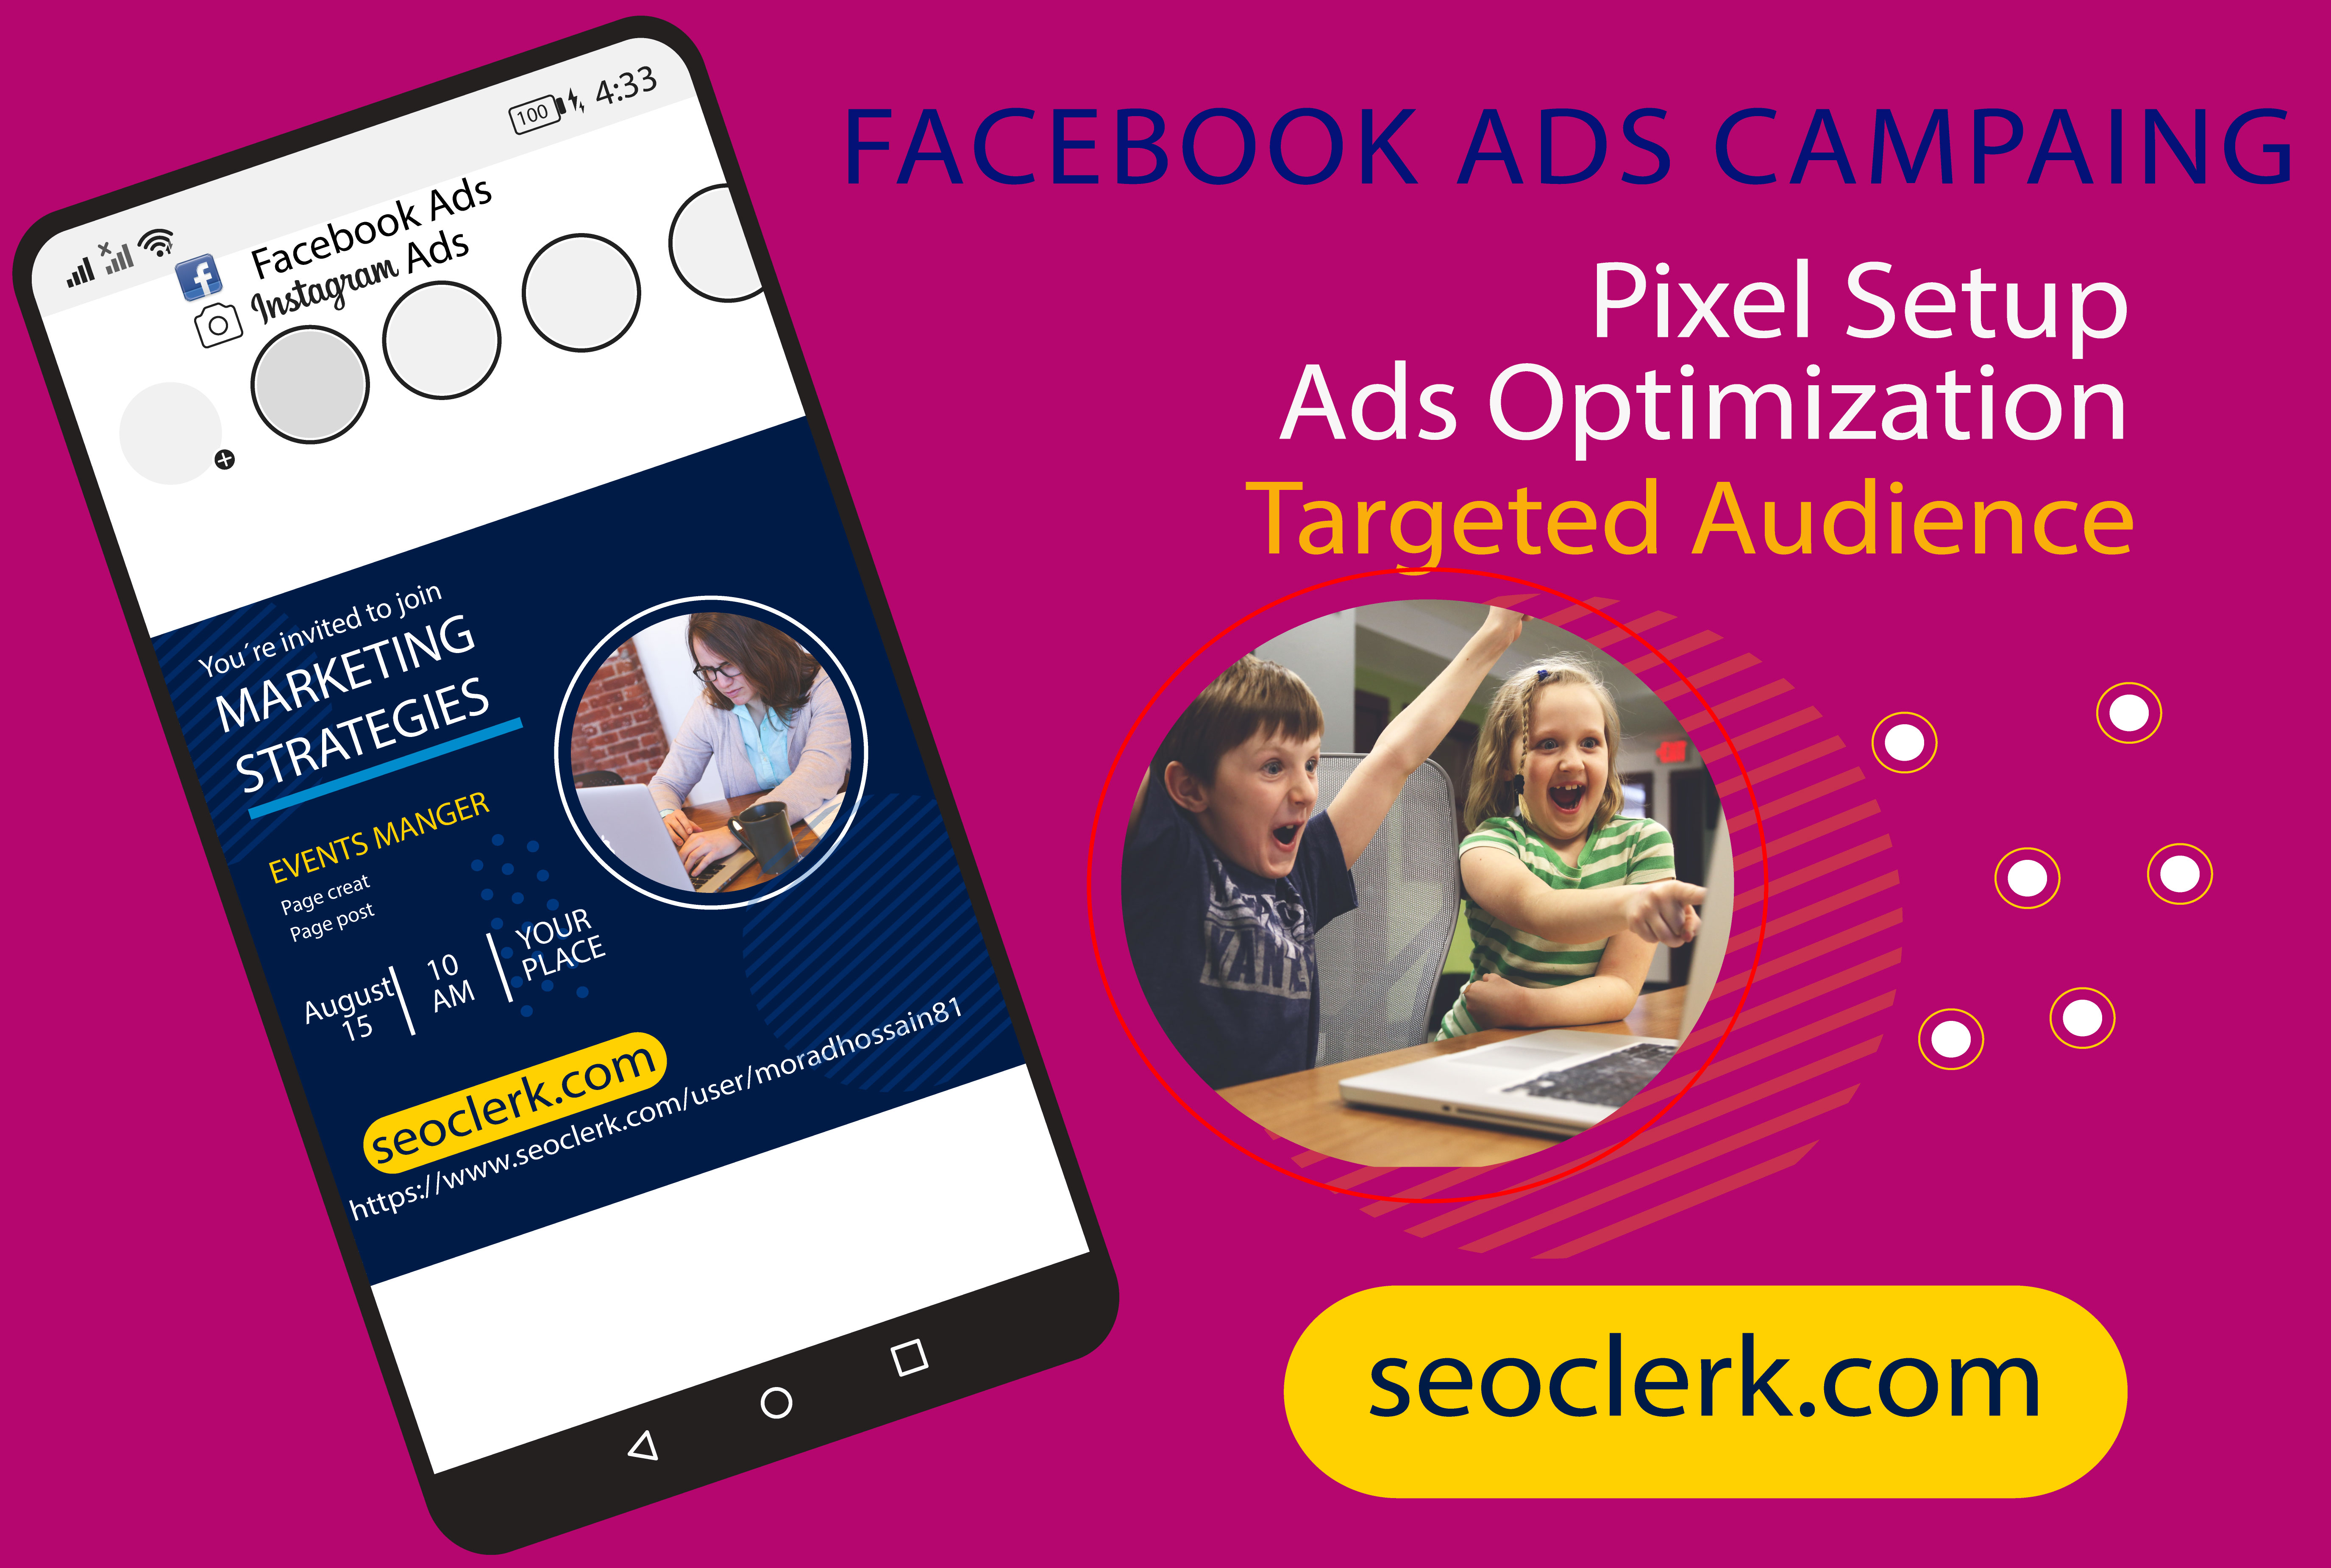 I will set up a Facebook ads campaign in the ads manager